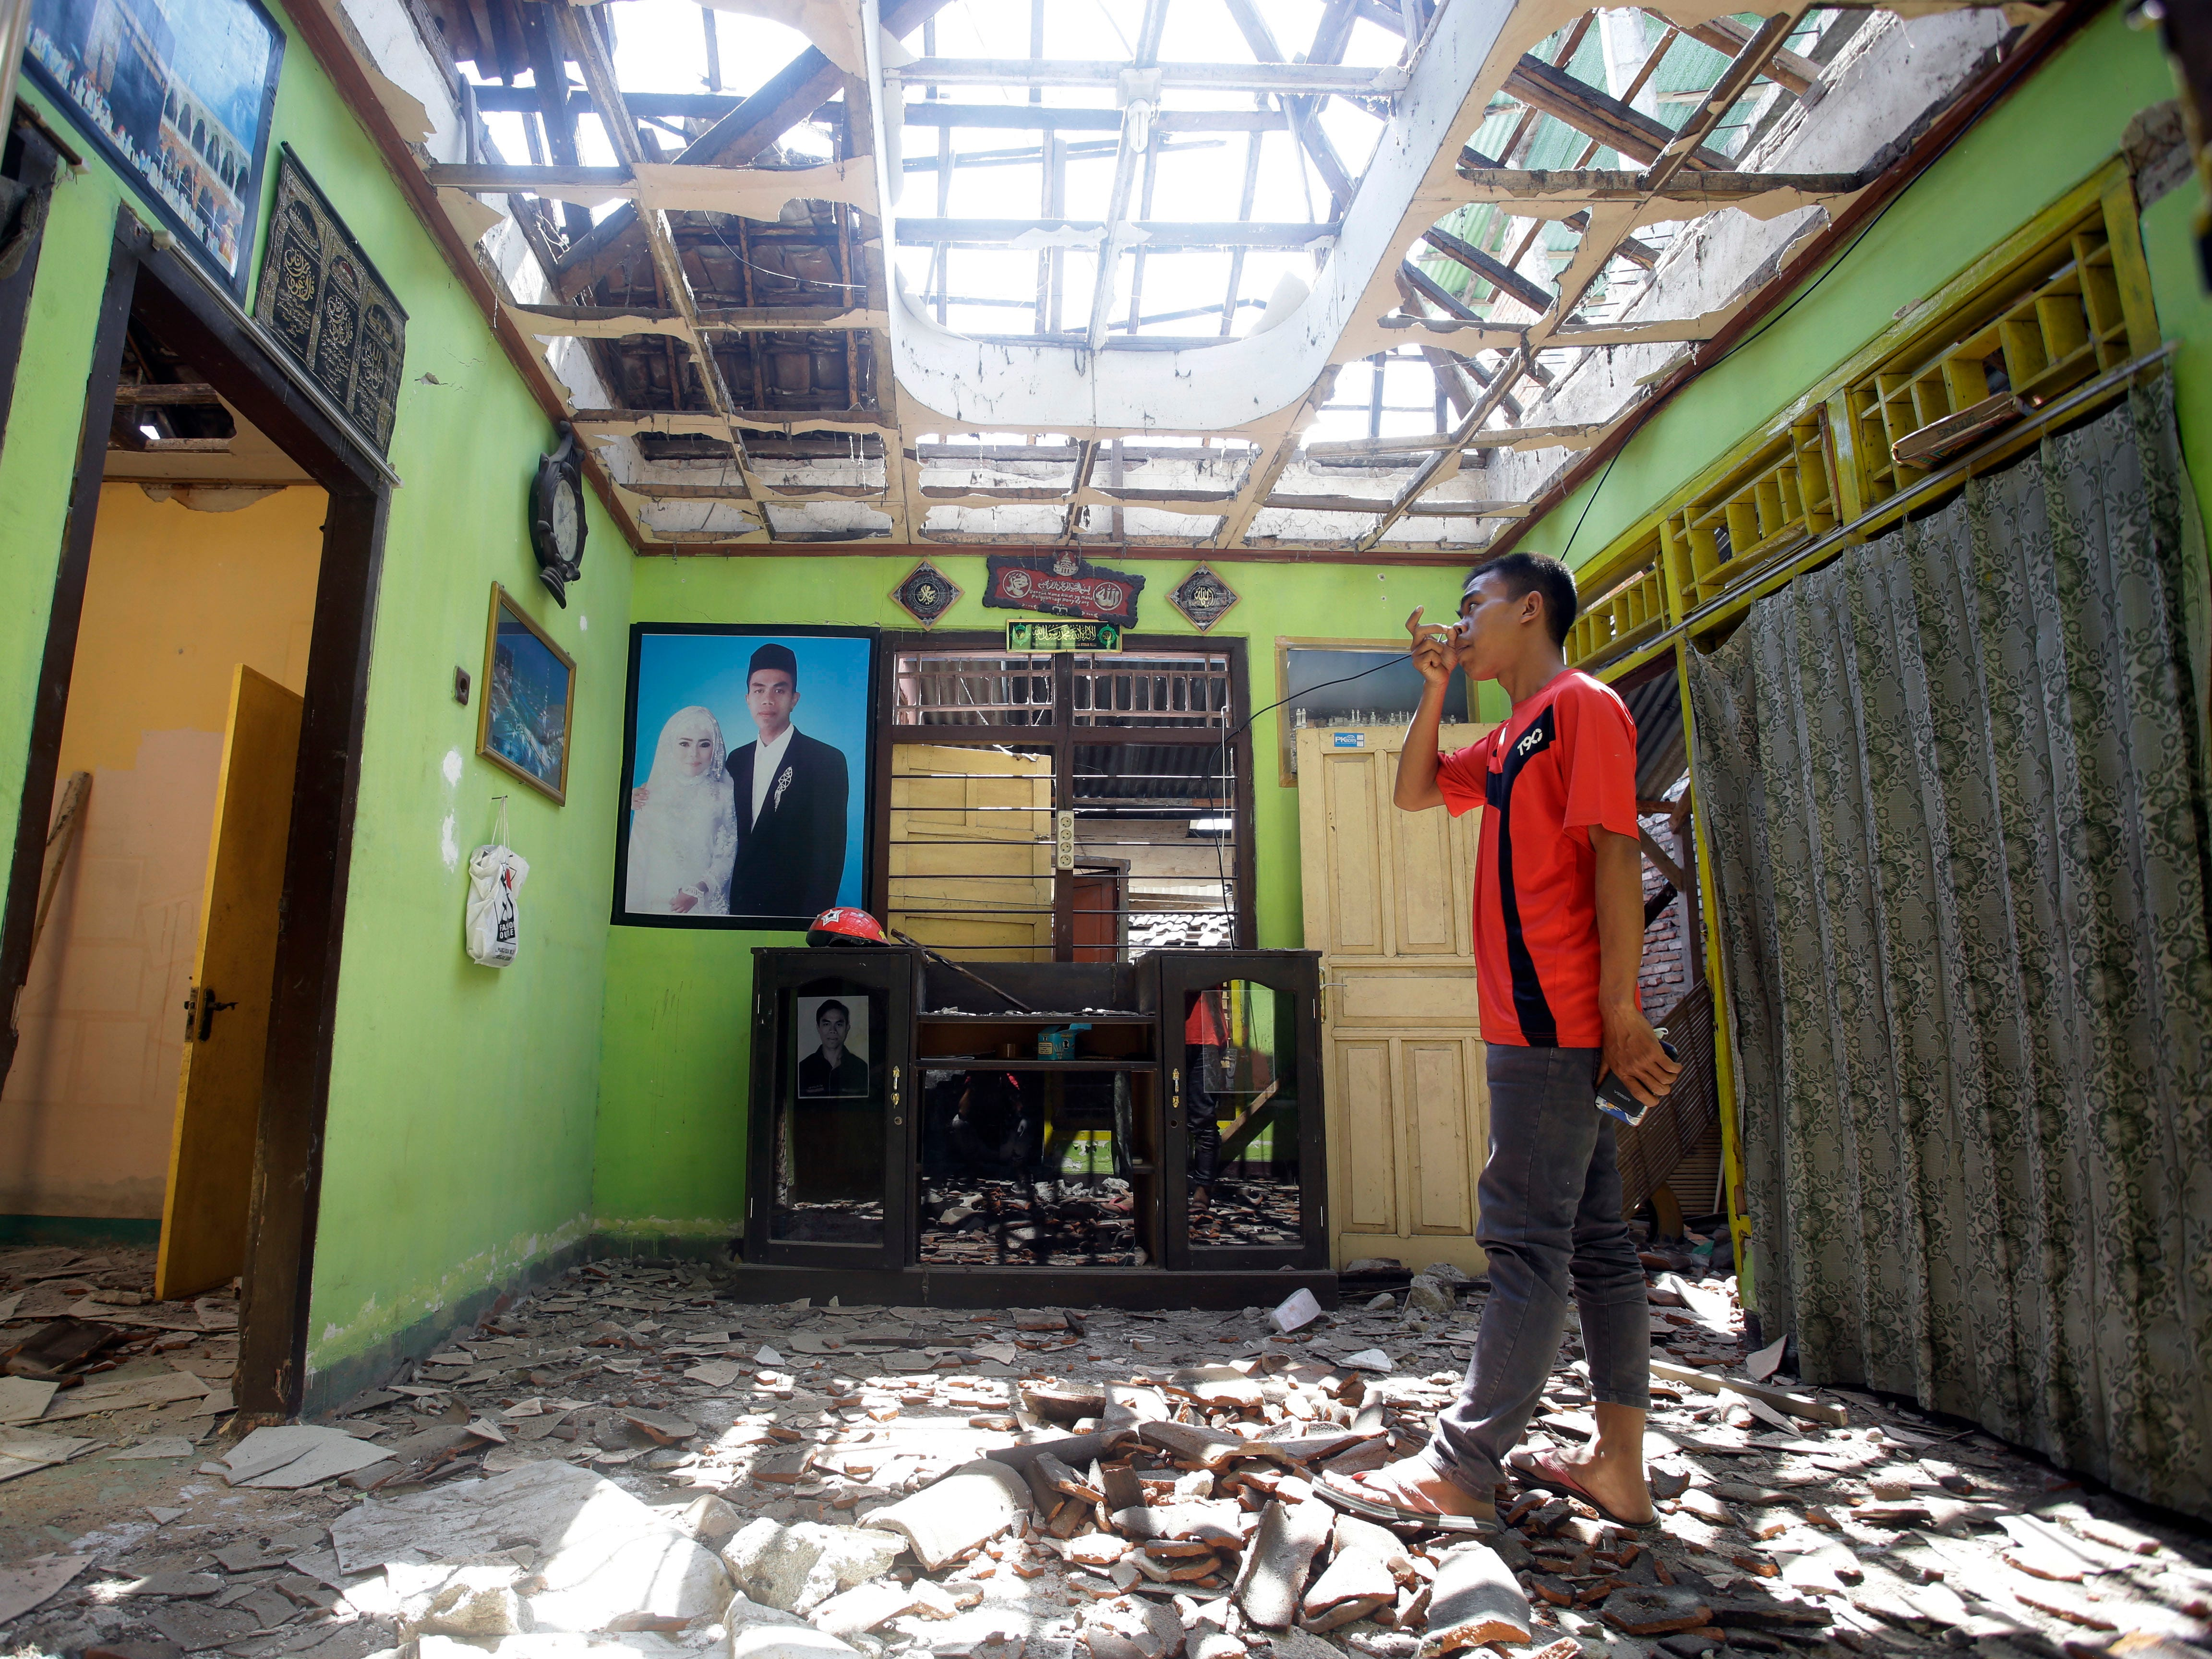 A villager visits his damaged house in the Kekait village affected by Sunday's earthquake in North Lombok, Indonesia on Weds. Aug. 8, 2018. Aid has begun reaching isolated areas of the Indonesian island struggling after an earthquake killed over 100 people as rescuers intensify efforts to find those buried in the rubble.